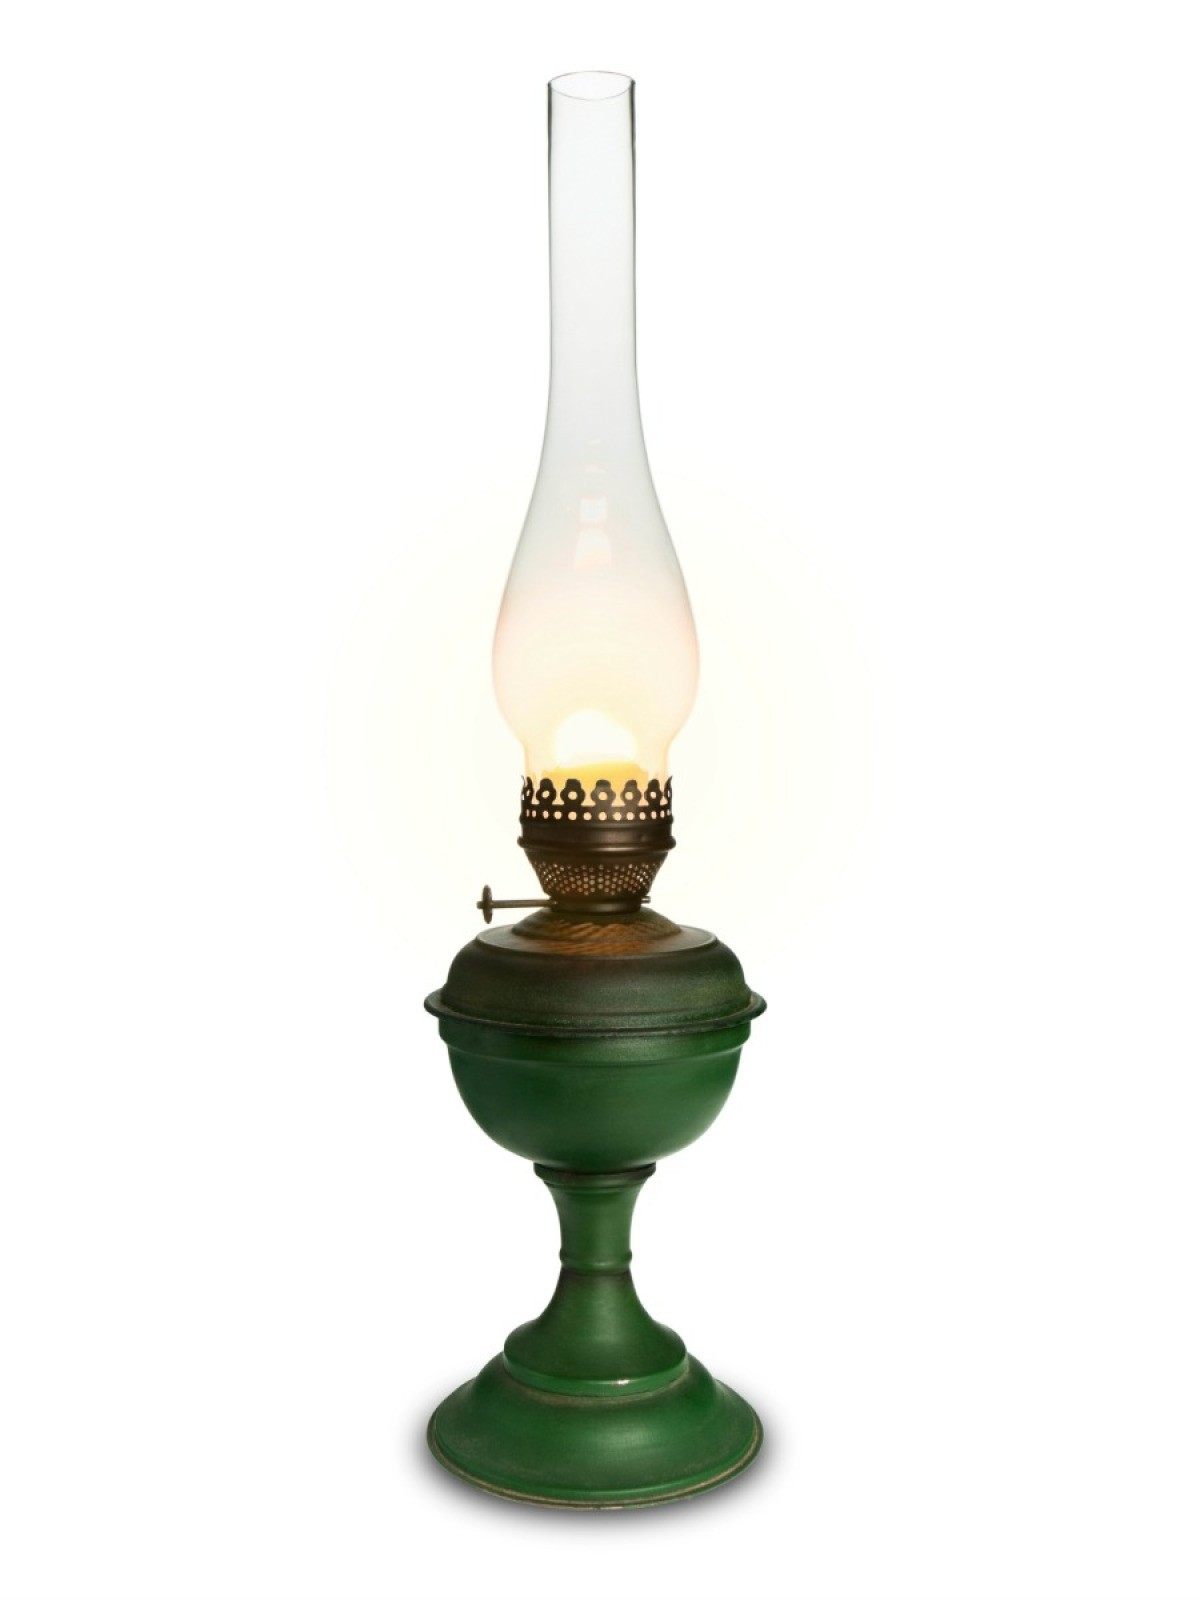 Diy Kerosene Lamp Using Olive Oil As Fuel For Oil Lamps Thriftyfun